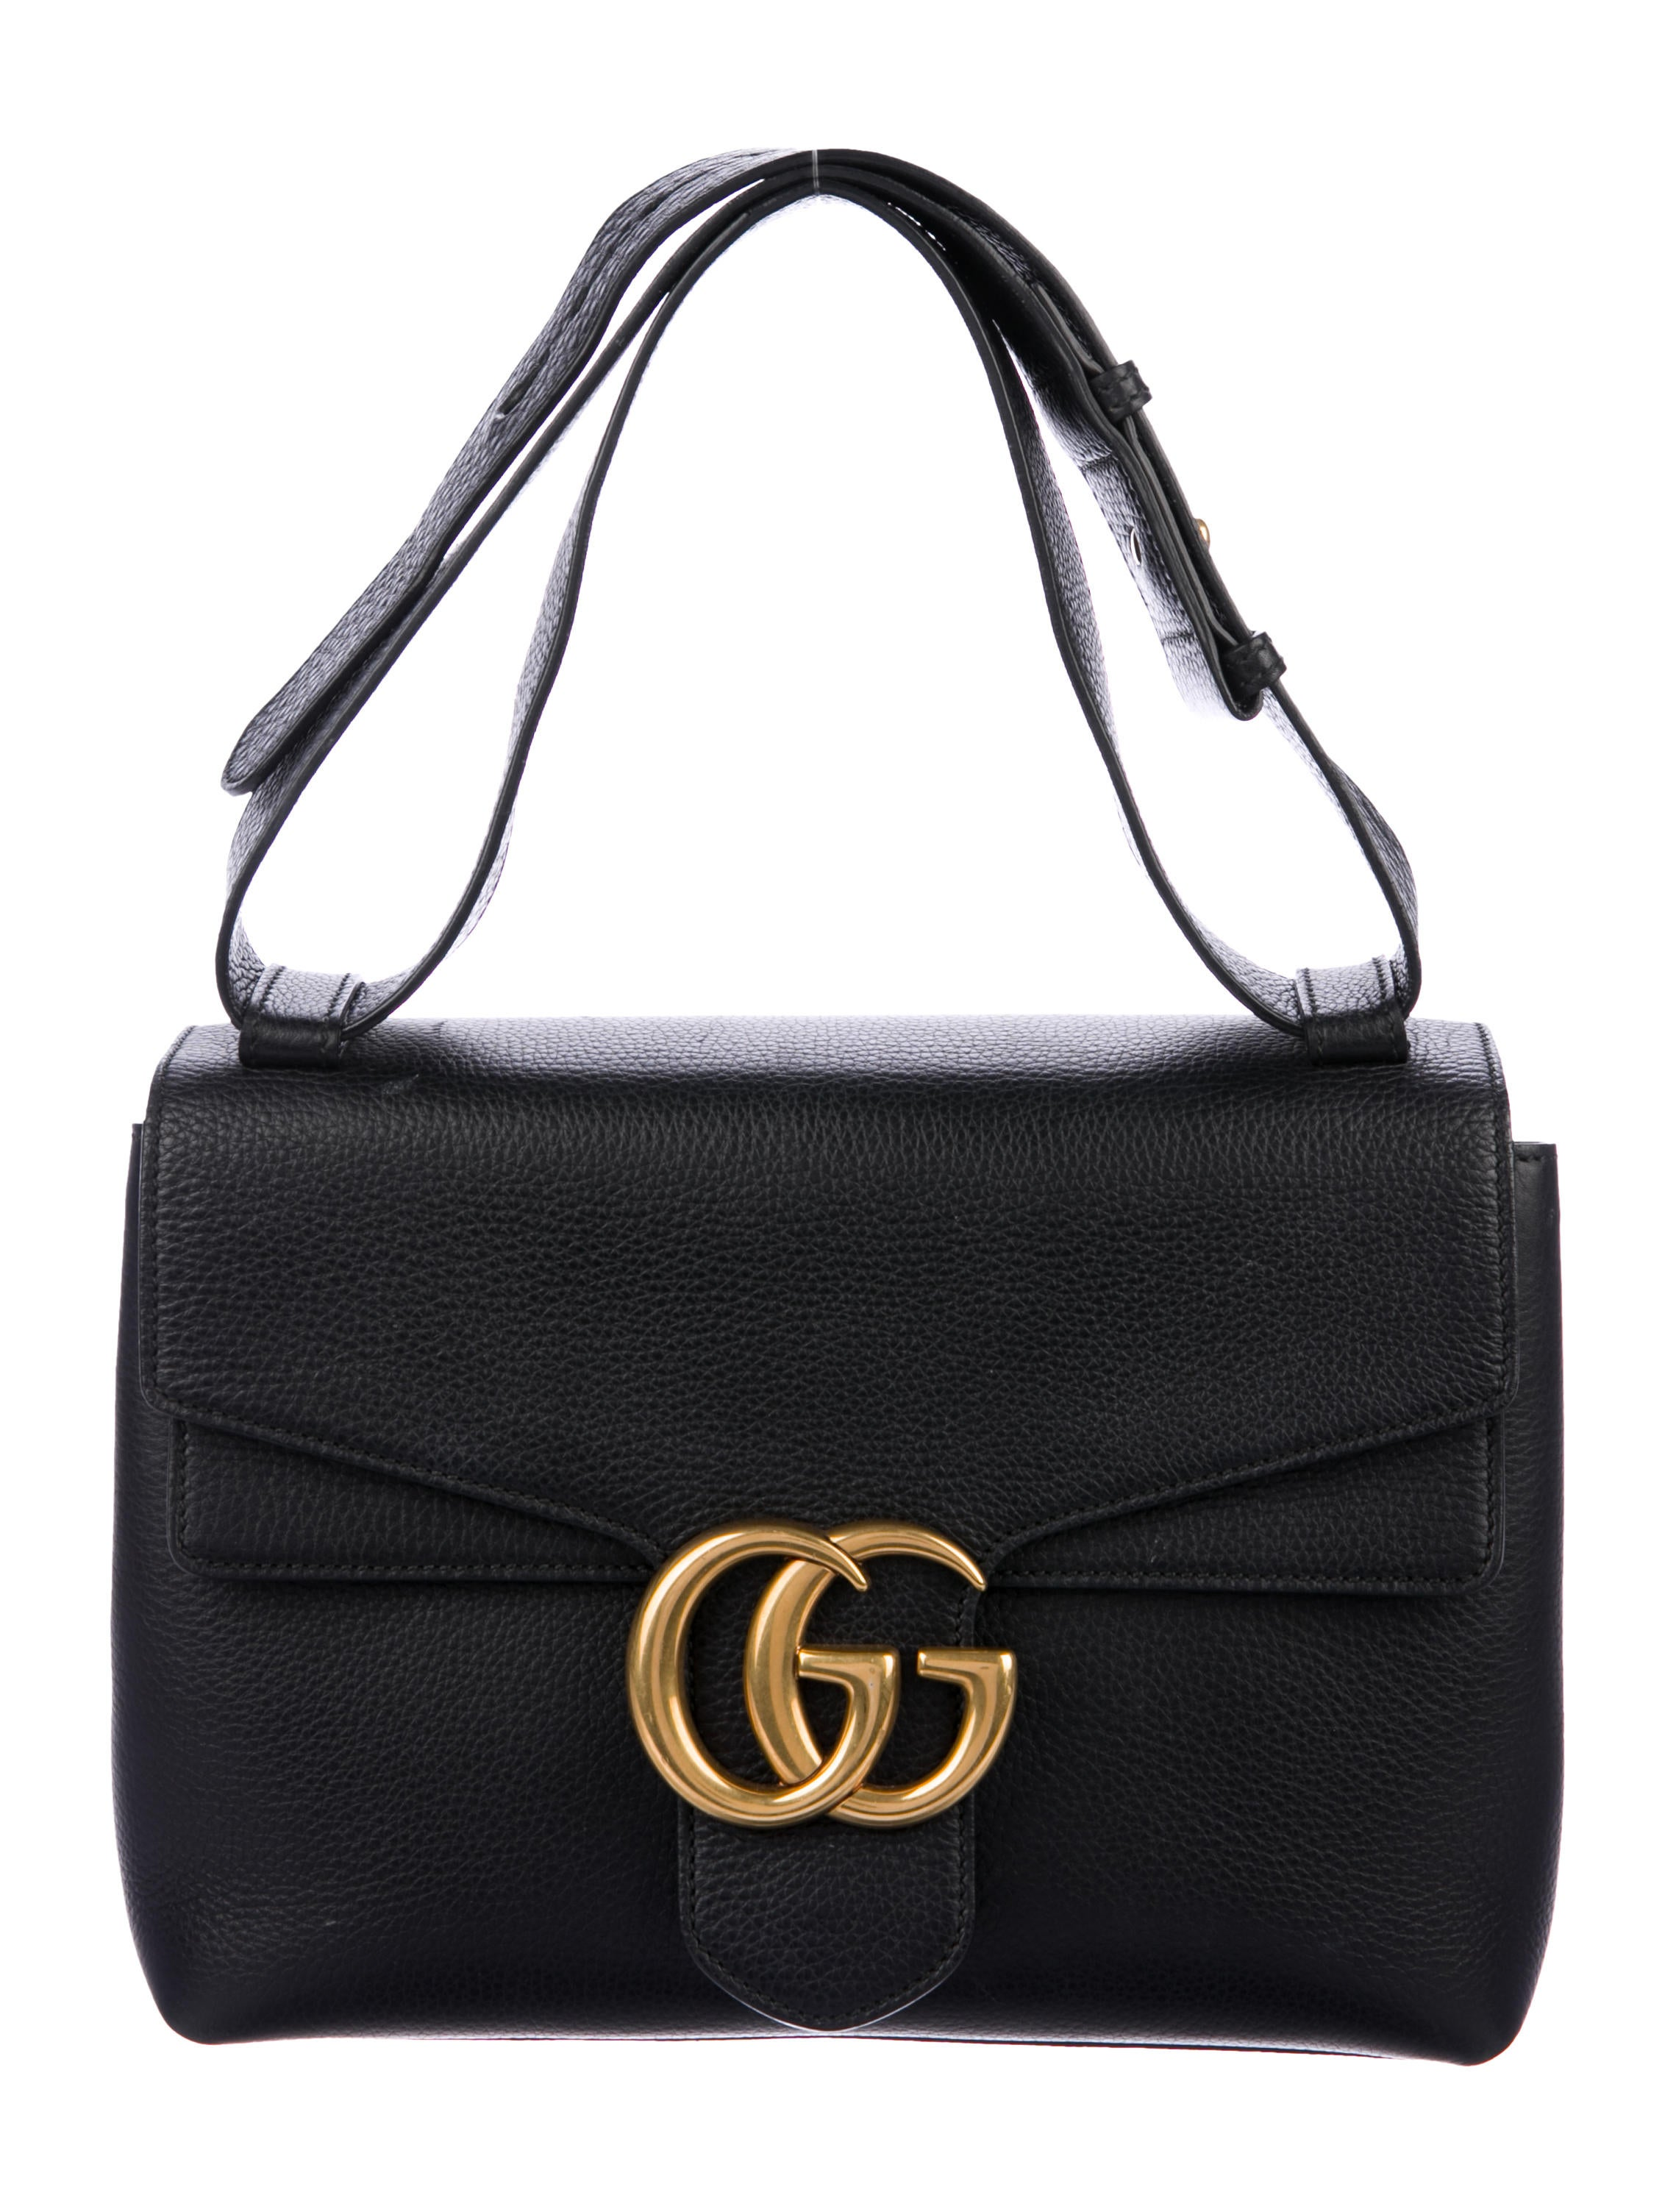 ff8606c0d410 Gucci GG Marmont Leather Shoulder Bag - Handbags - GUC228873 | The ...